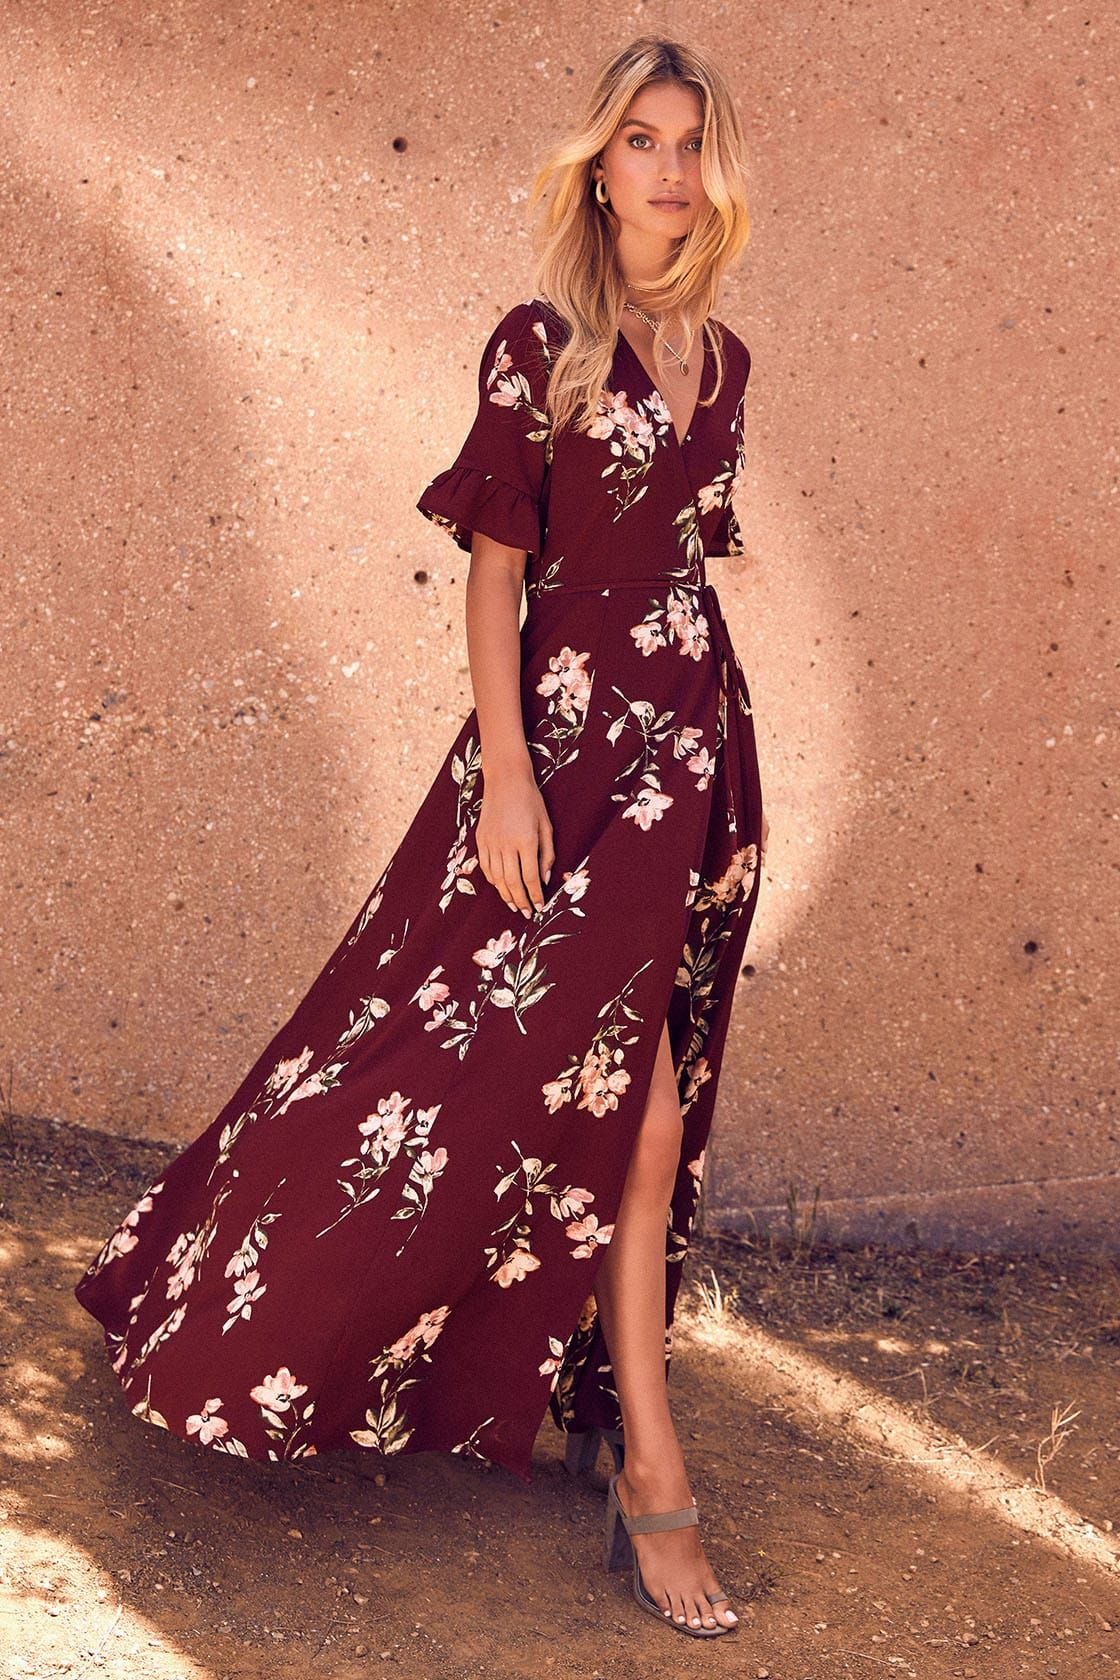 Burgundy Maxi Dress With Long Sleeves Maxi Dress Burgundy Maxi Dress Long Sleeve Maxi Dress [ 2047 x 1365 Pixel ]